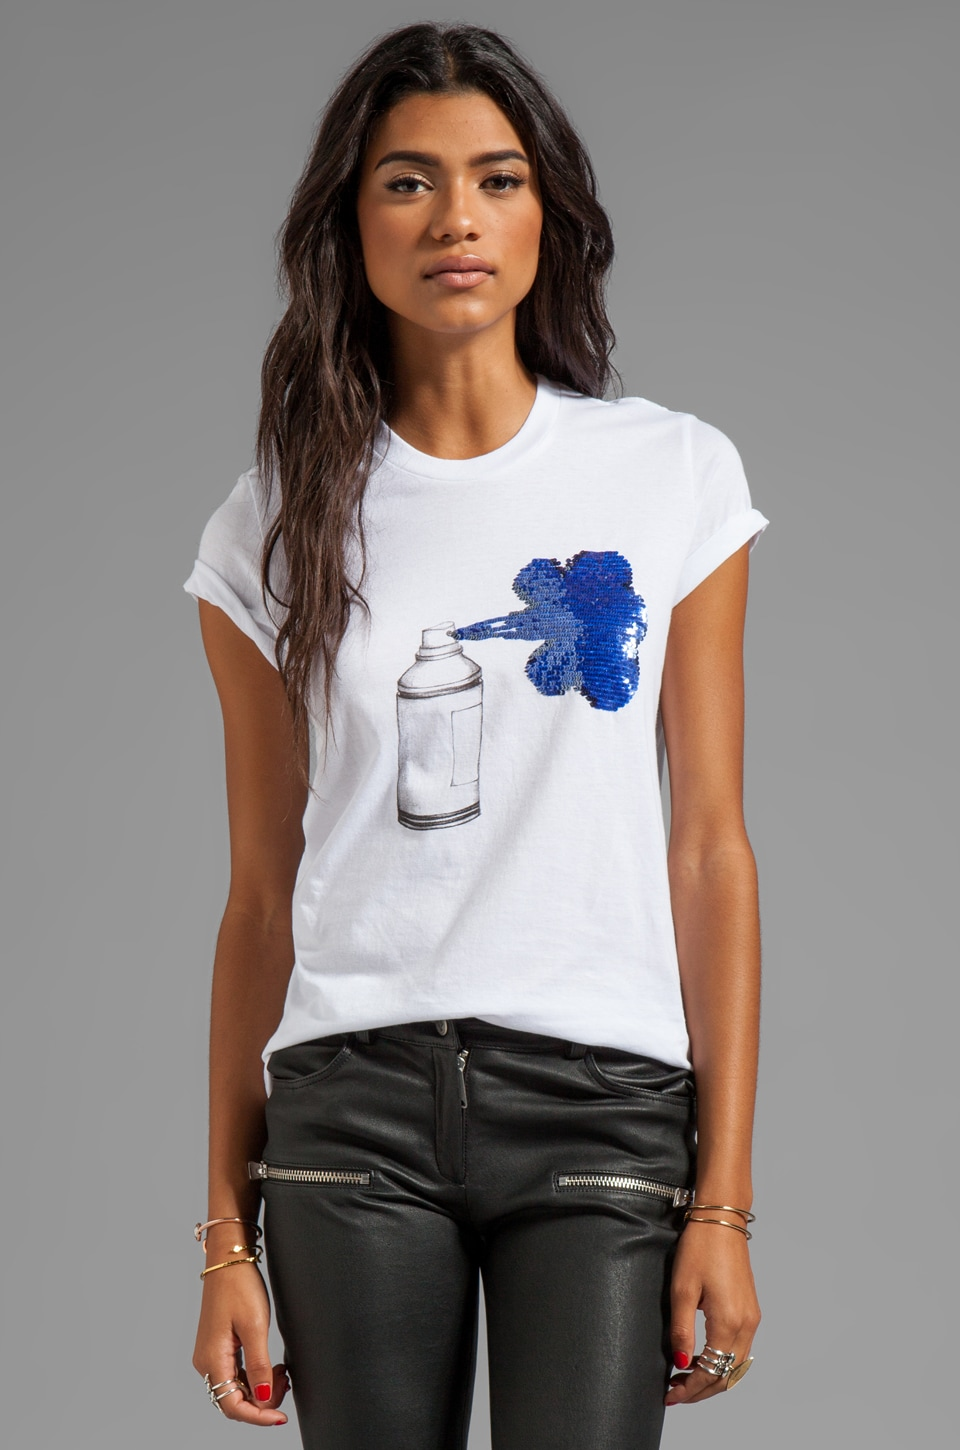 Markus Lupfer Sequin Spray Can Tee in White/Blue